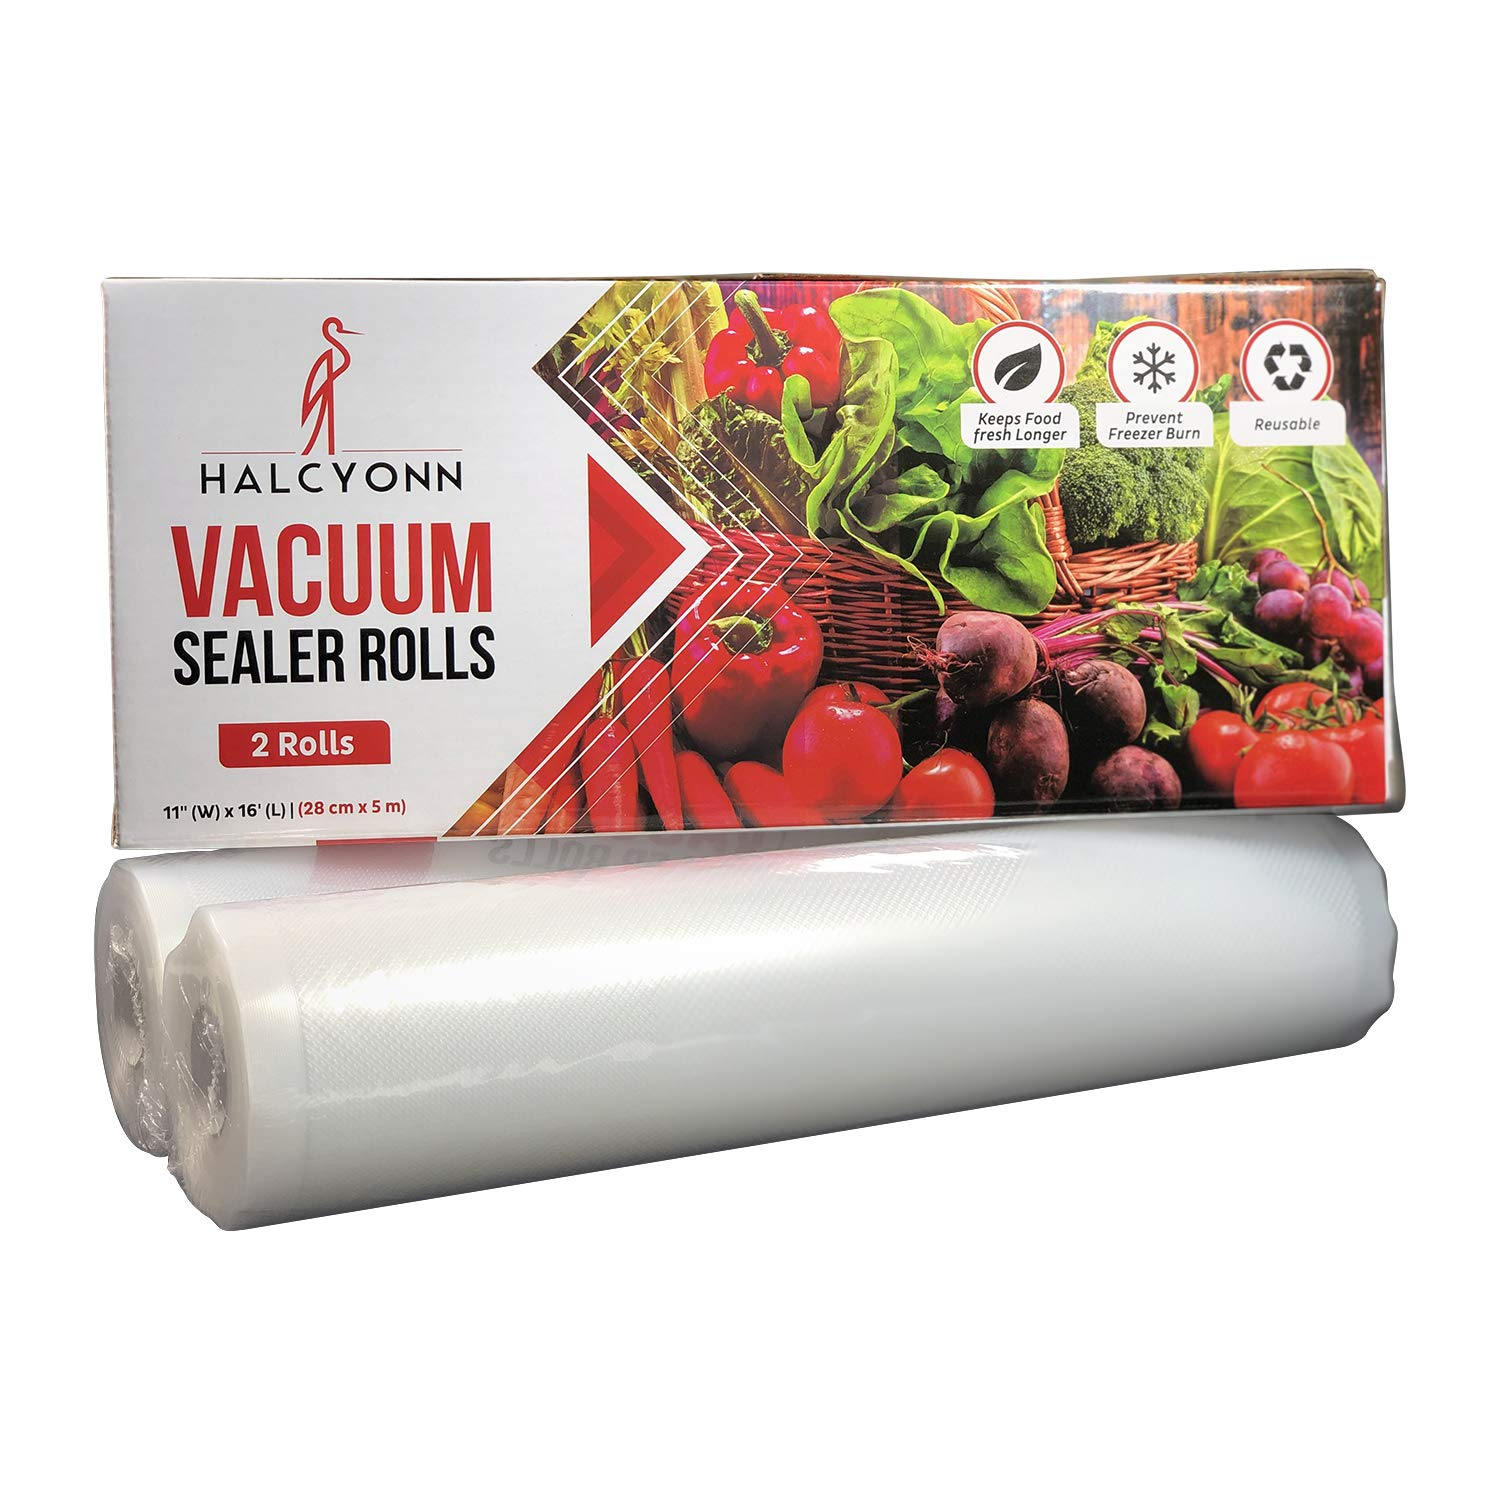 2 Pack Halcyonn Vacuum Sealer Rolls Freezer Preserver 2 large big and wide boilable travel reusable refills roll and xl bags HVSR000001 11 x 16 BPA Safe Thick Heavy Duty Resealable